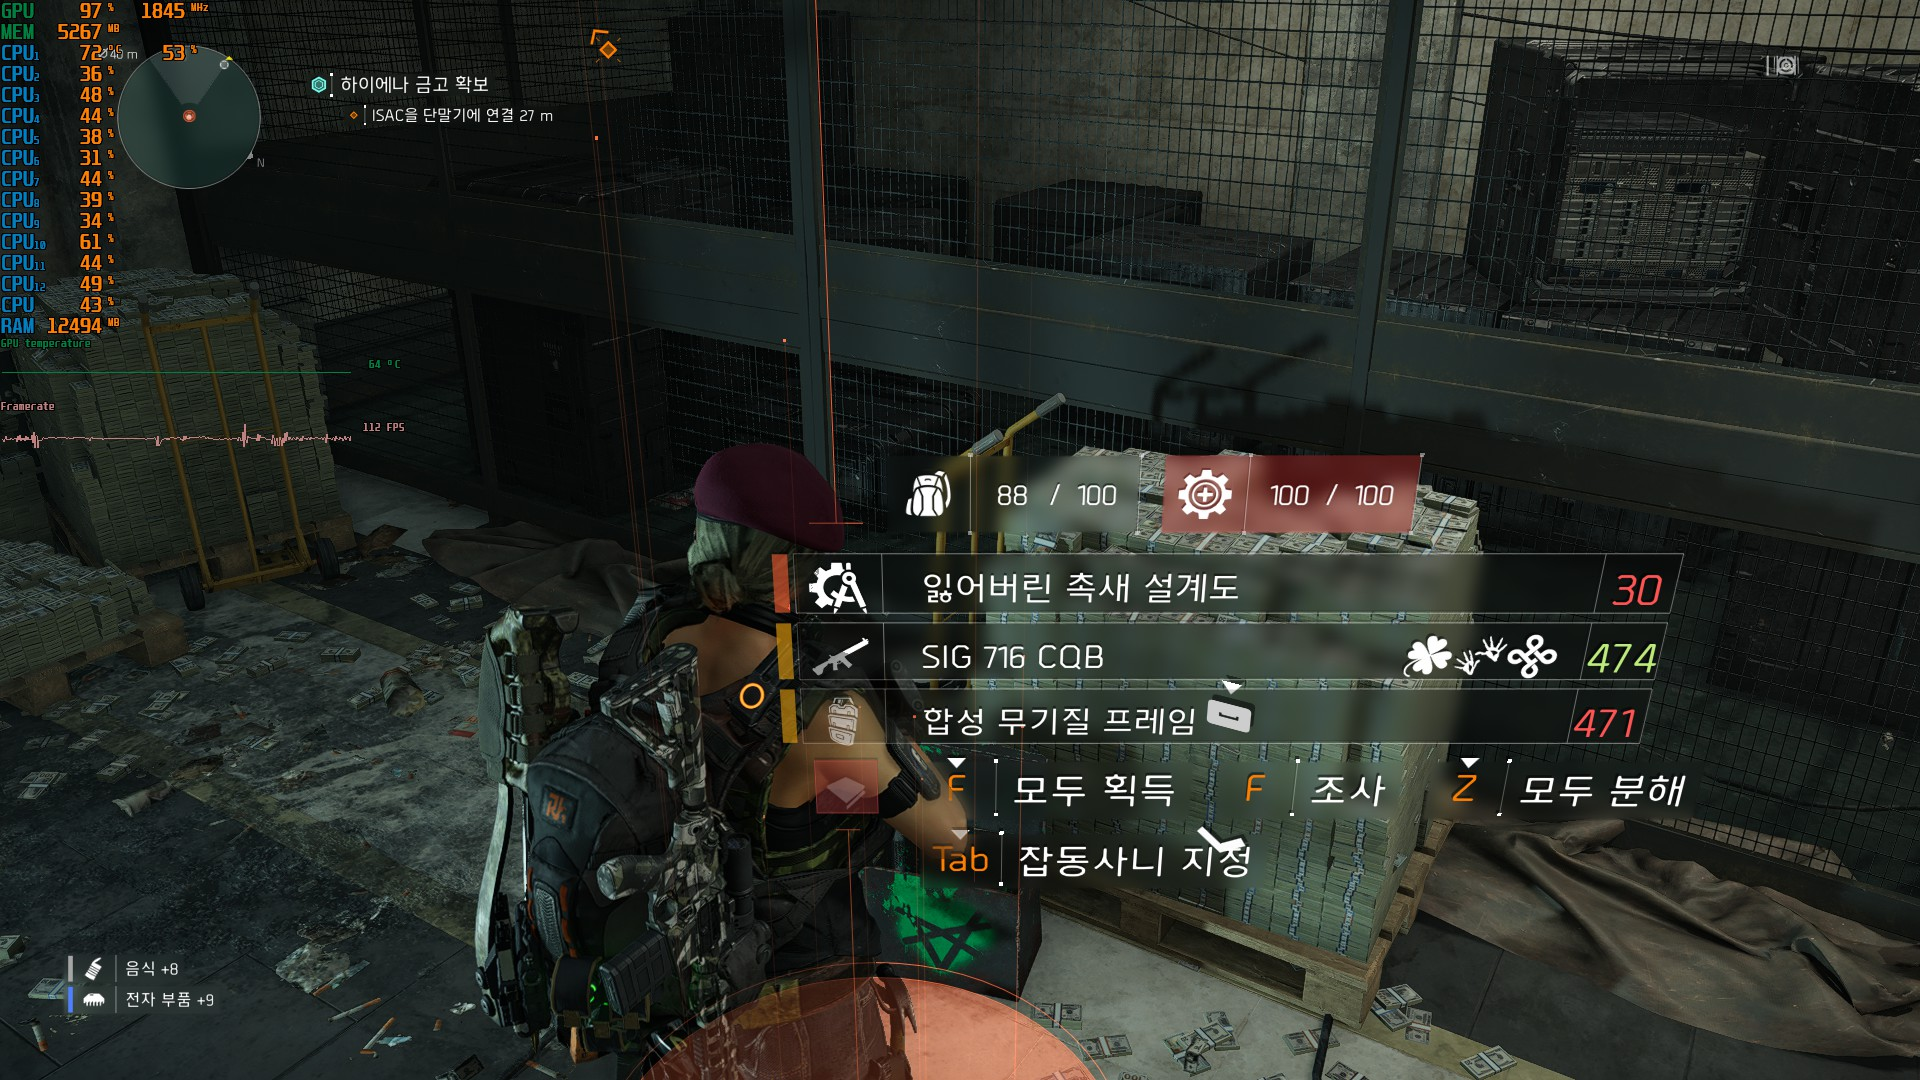 Tom Clancy's The Division® 22019-4-22-23-57-4.jpg